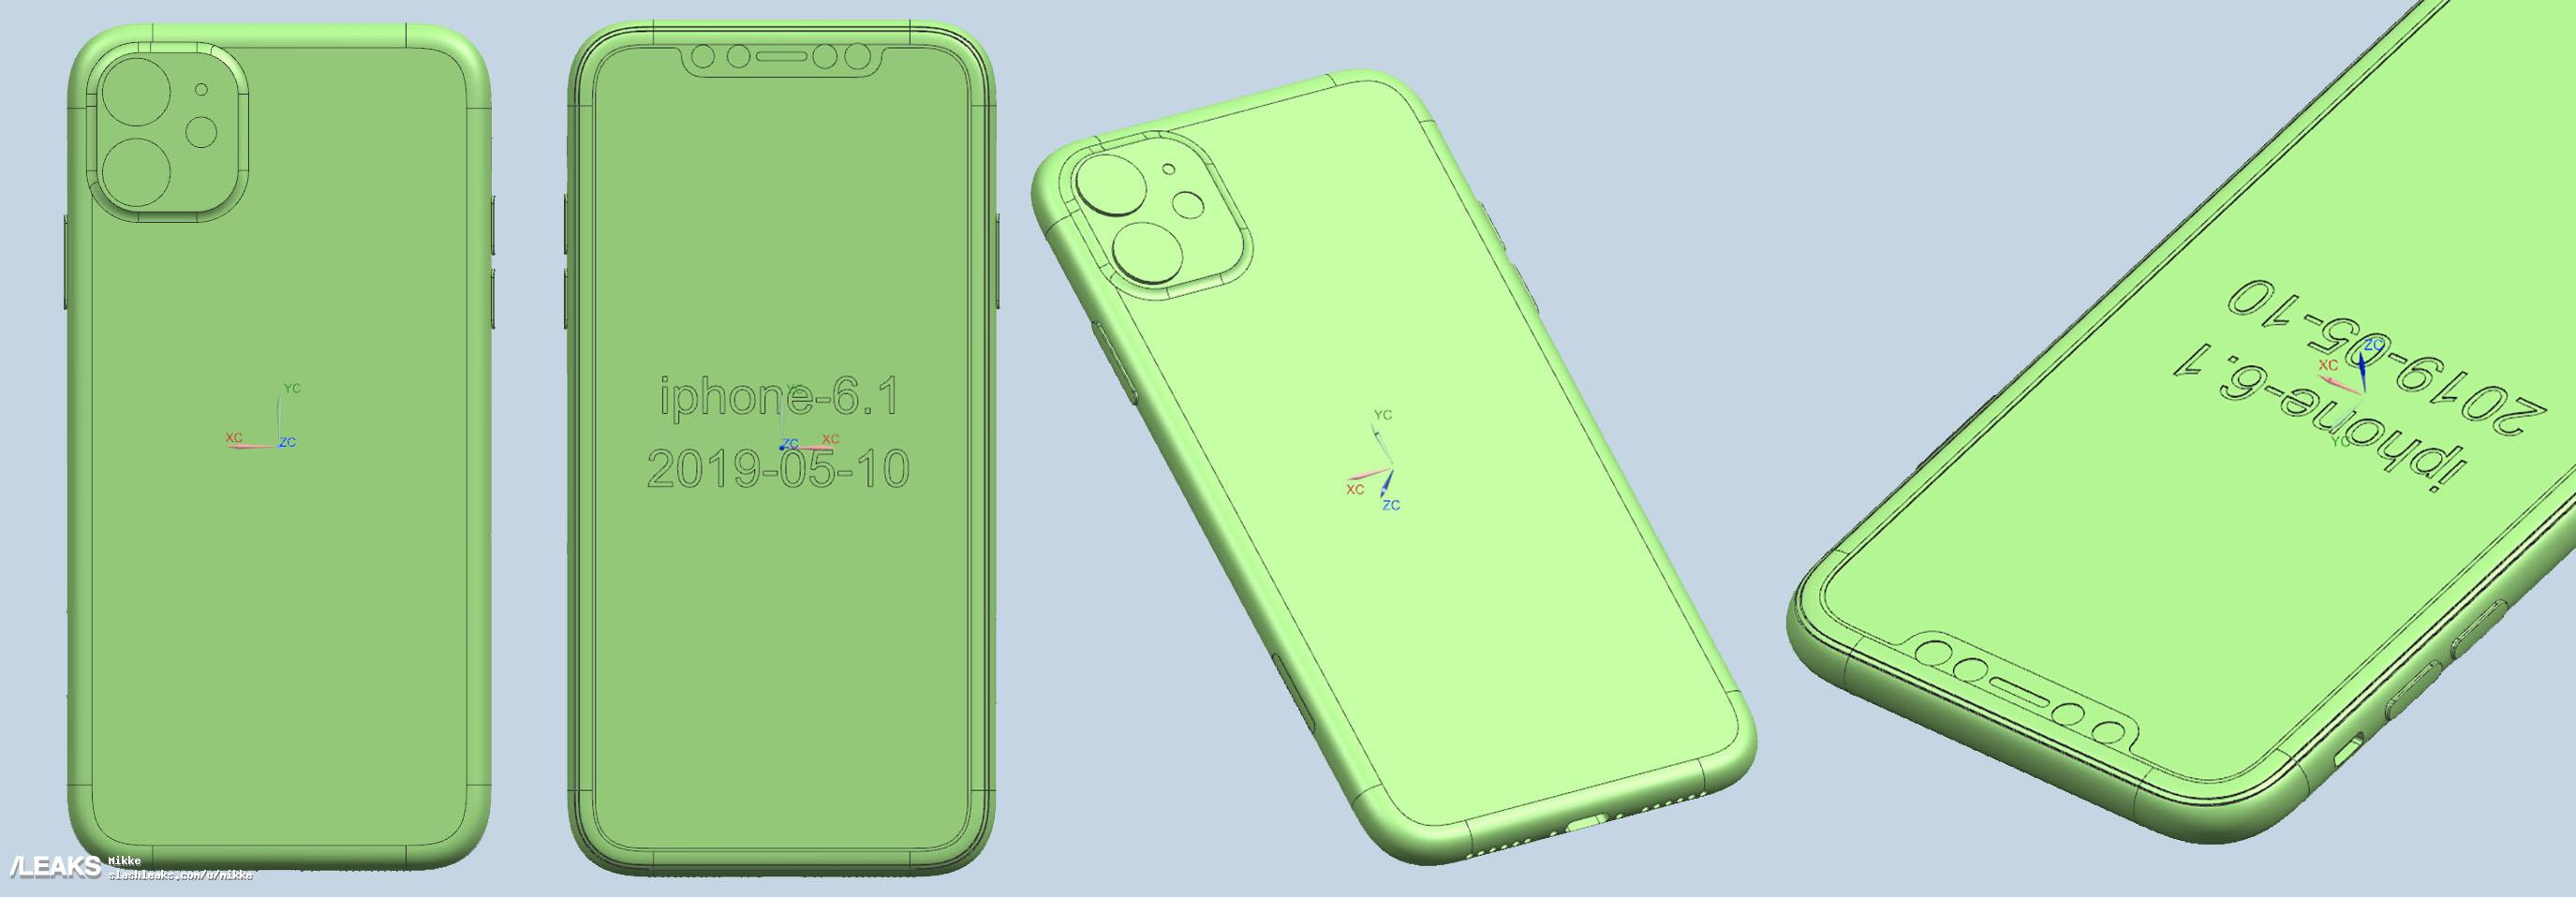 Iphone 2019 Cad Renders Image Leaks Img 3